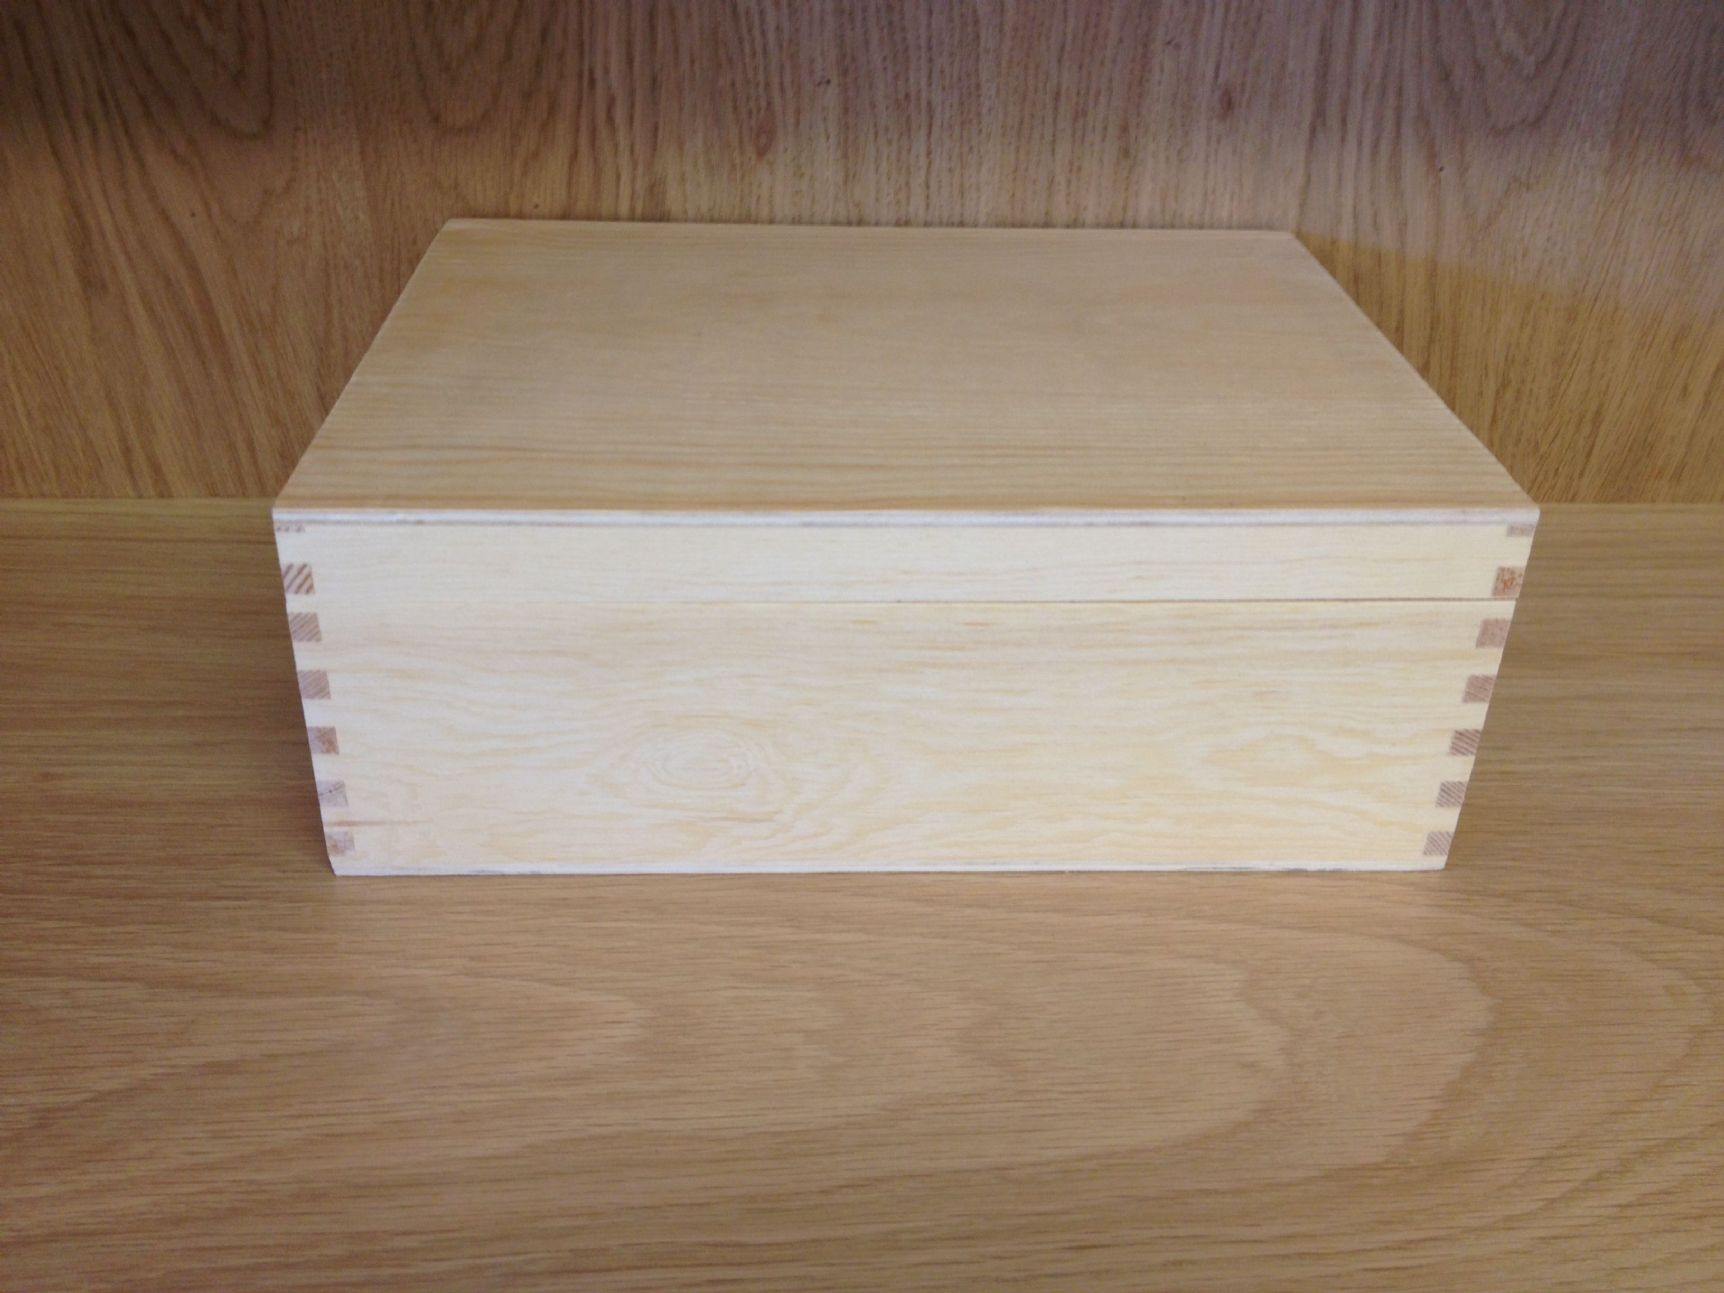 Wooden Boxes 3 Sizes